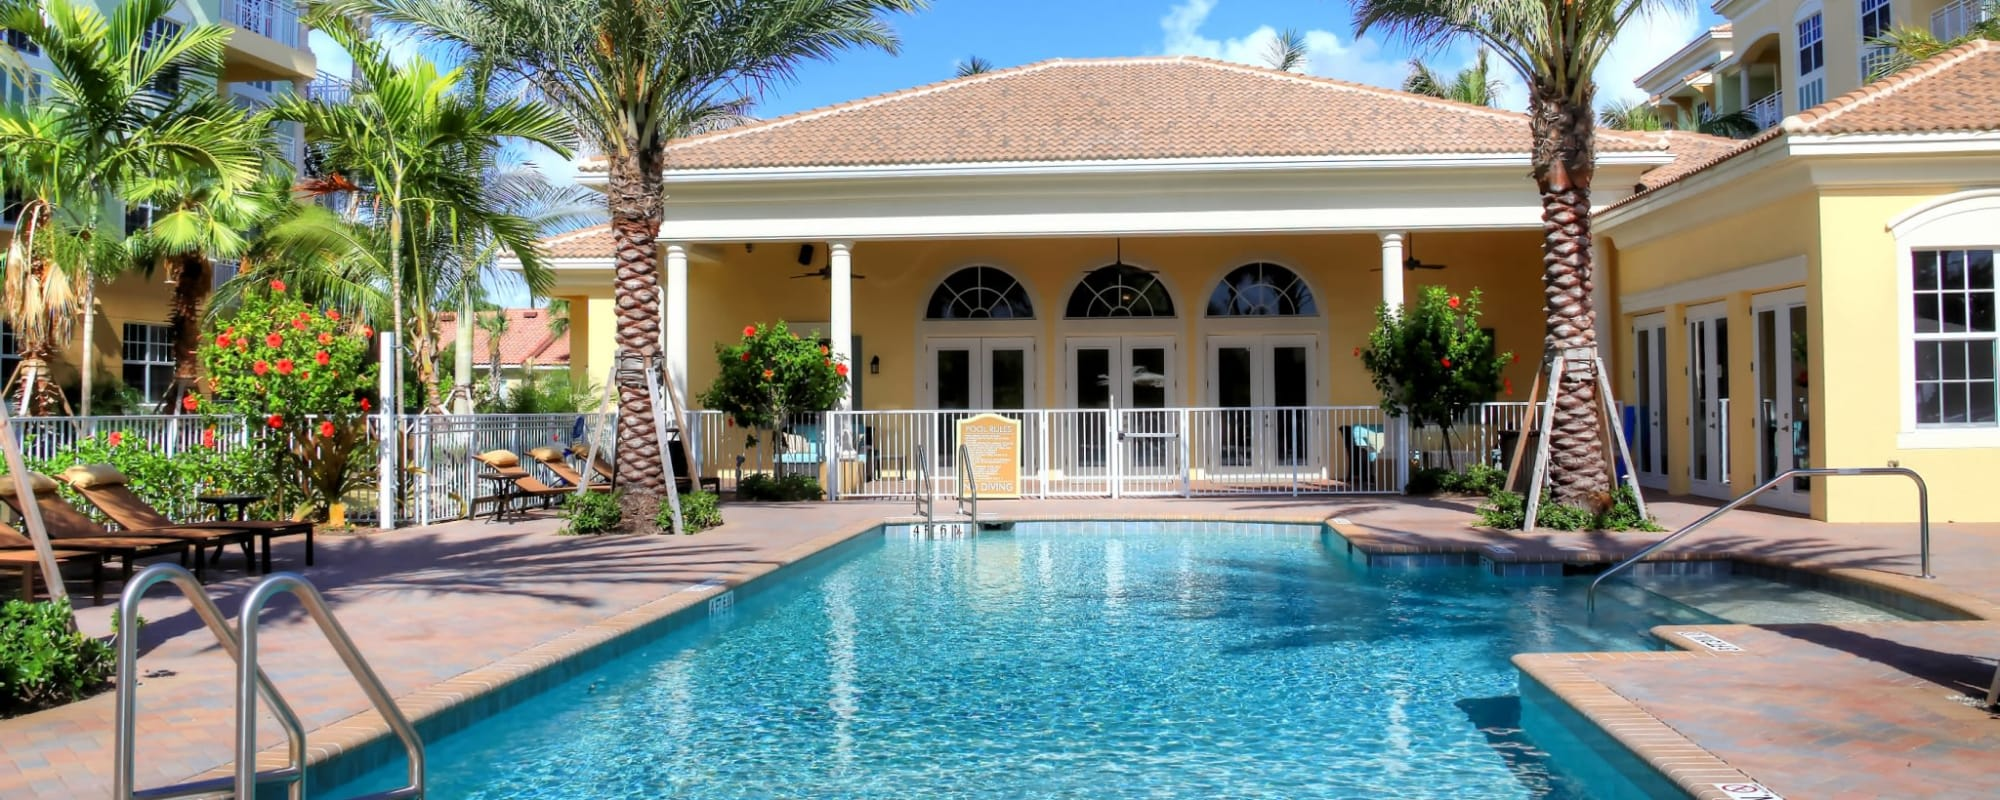 Resort-style swimming pool at Riverwalk Pointe in Jupiter, Florida